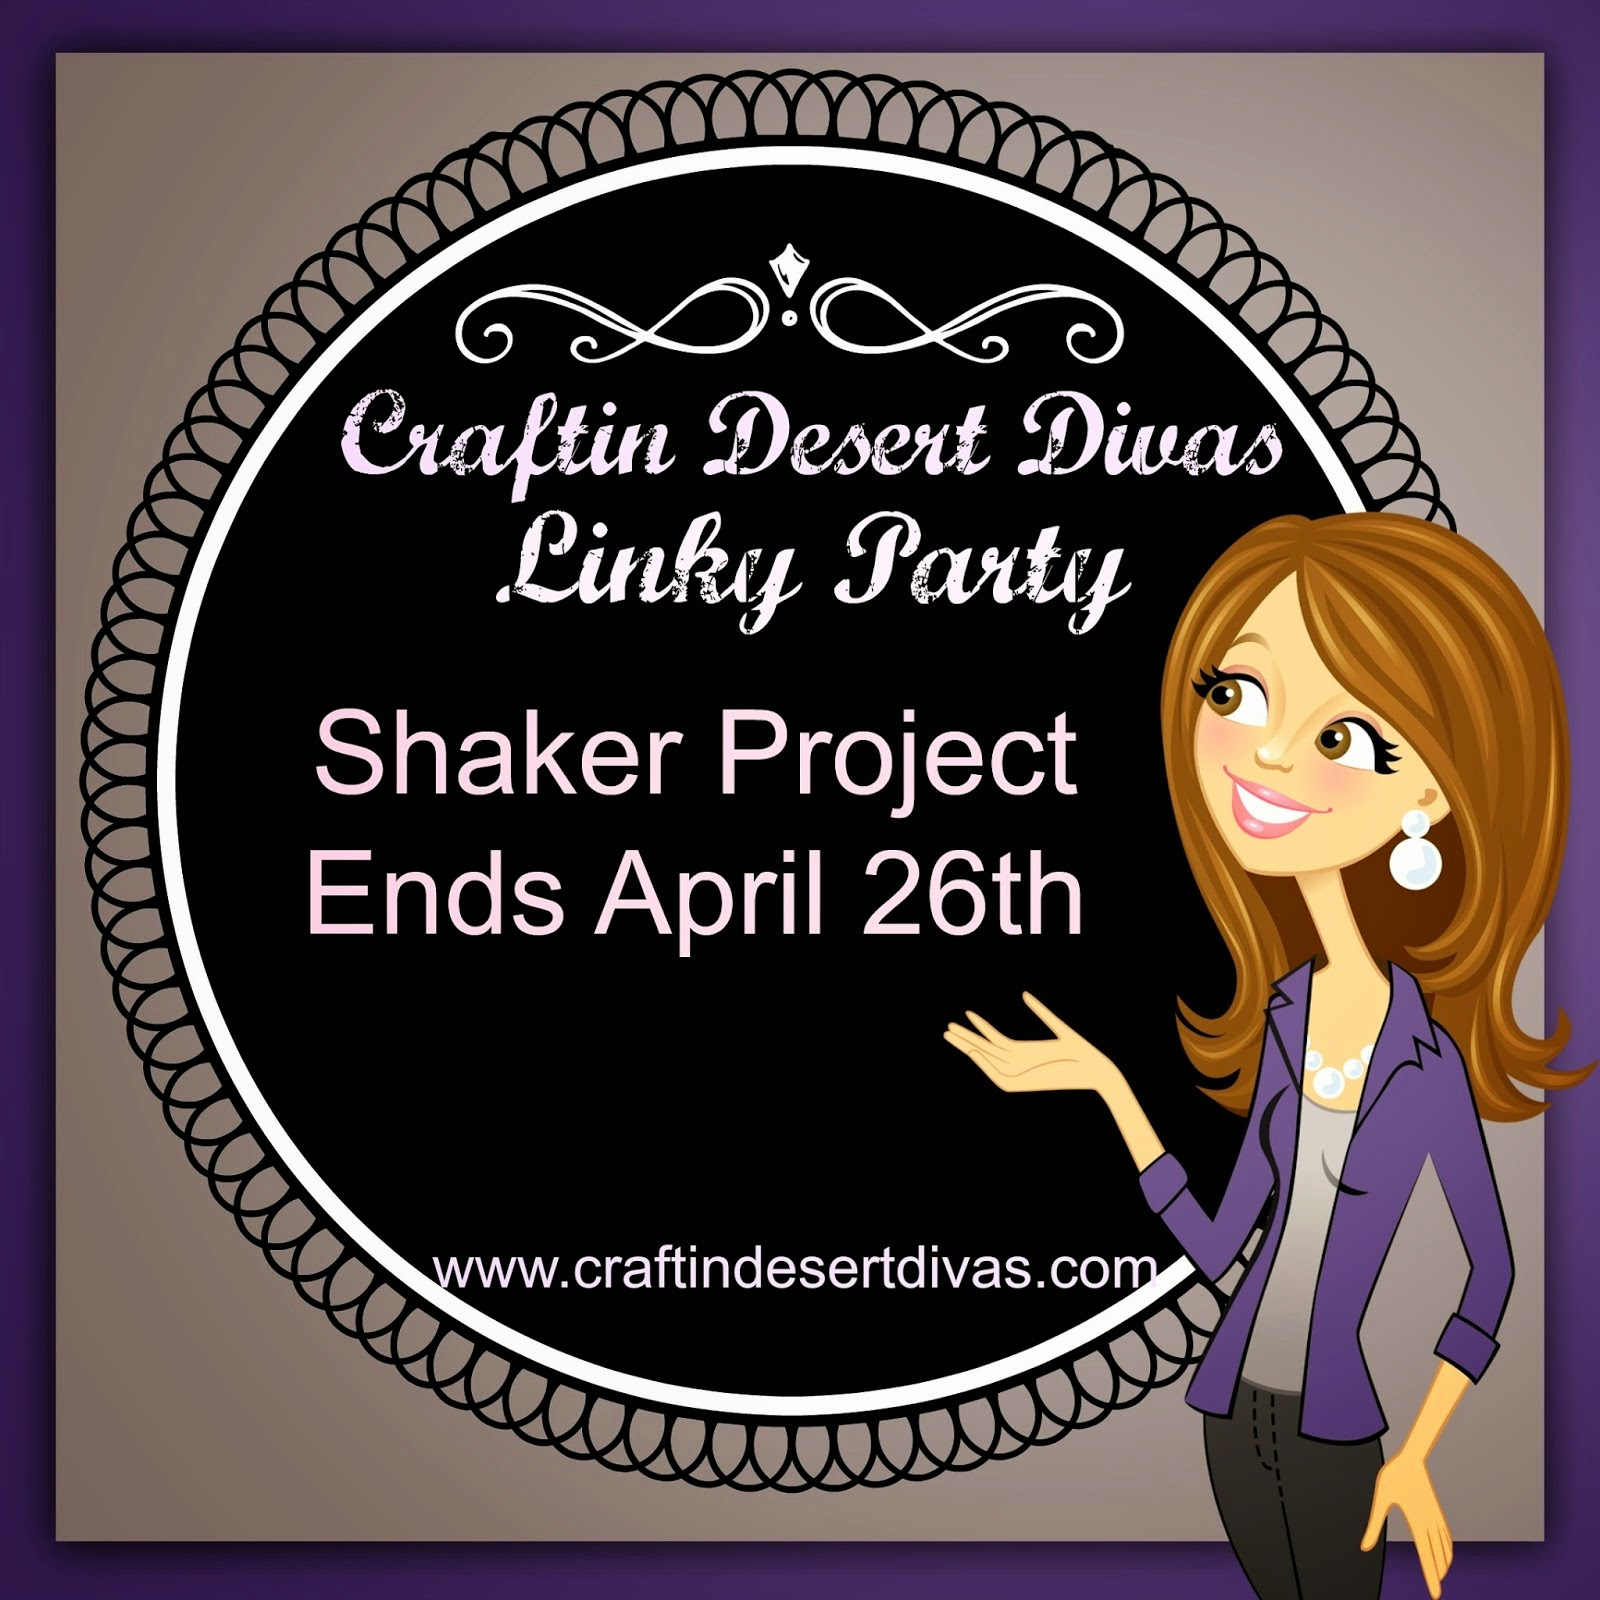 http://www.craftindesertdivas.com/2015/04/craft-it-up-link-it-up-shaker-linky.html